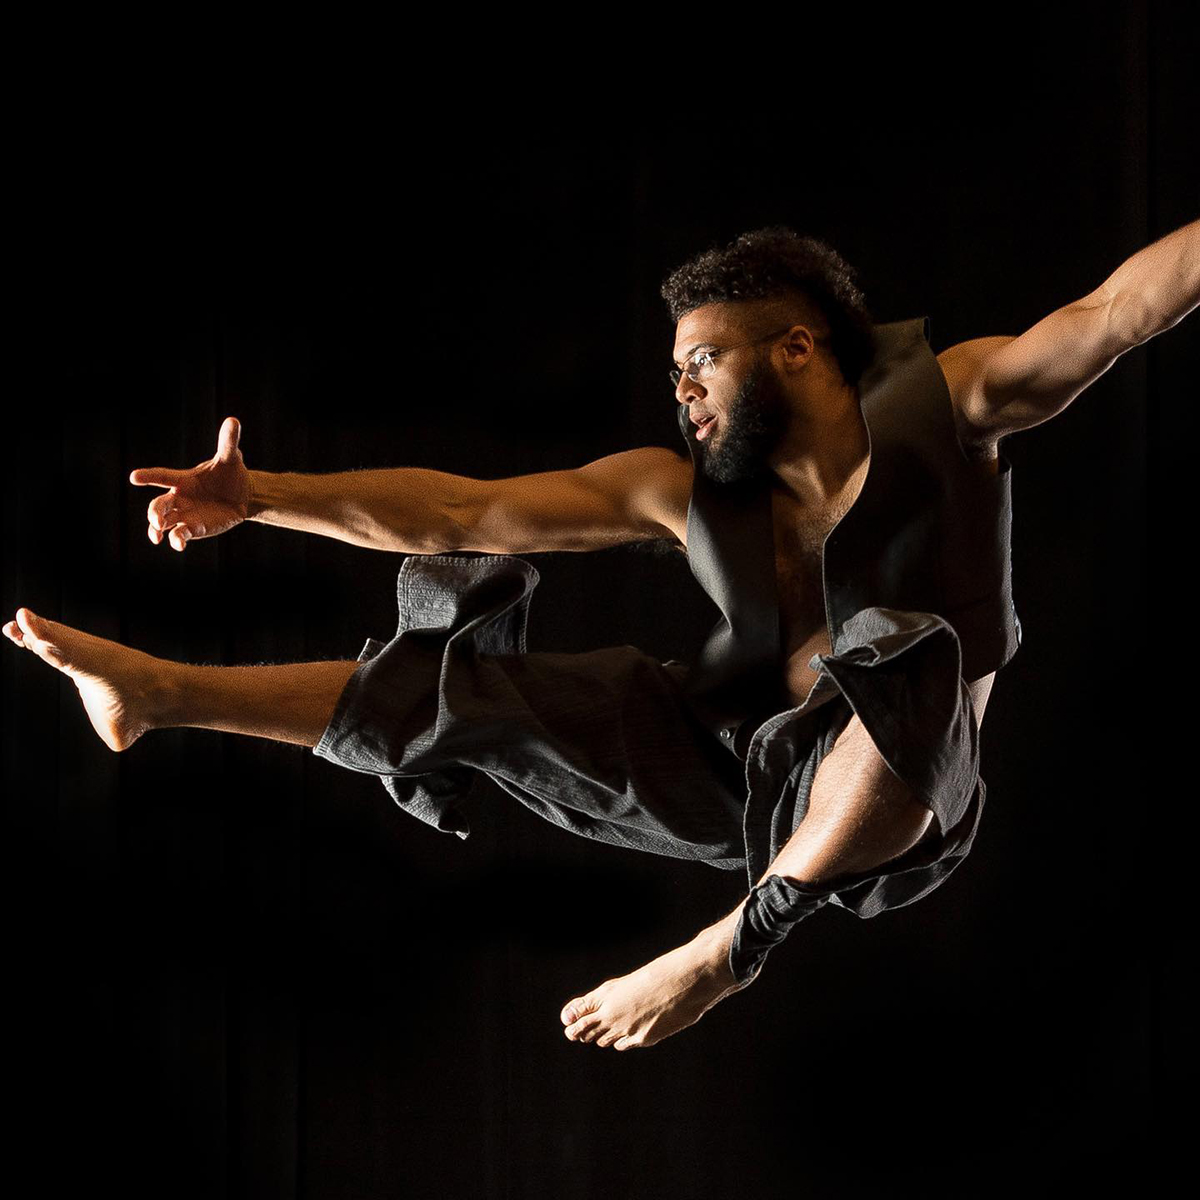 Male dancer leaping in the air